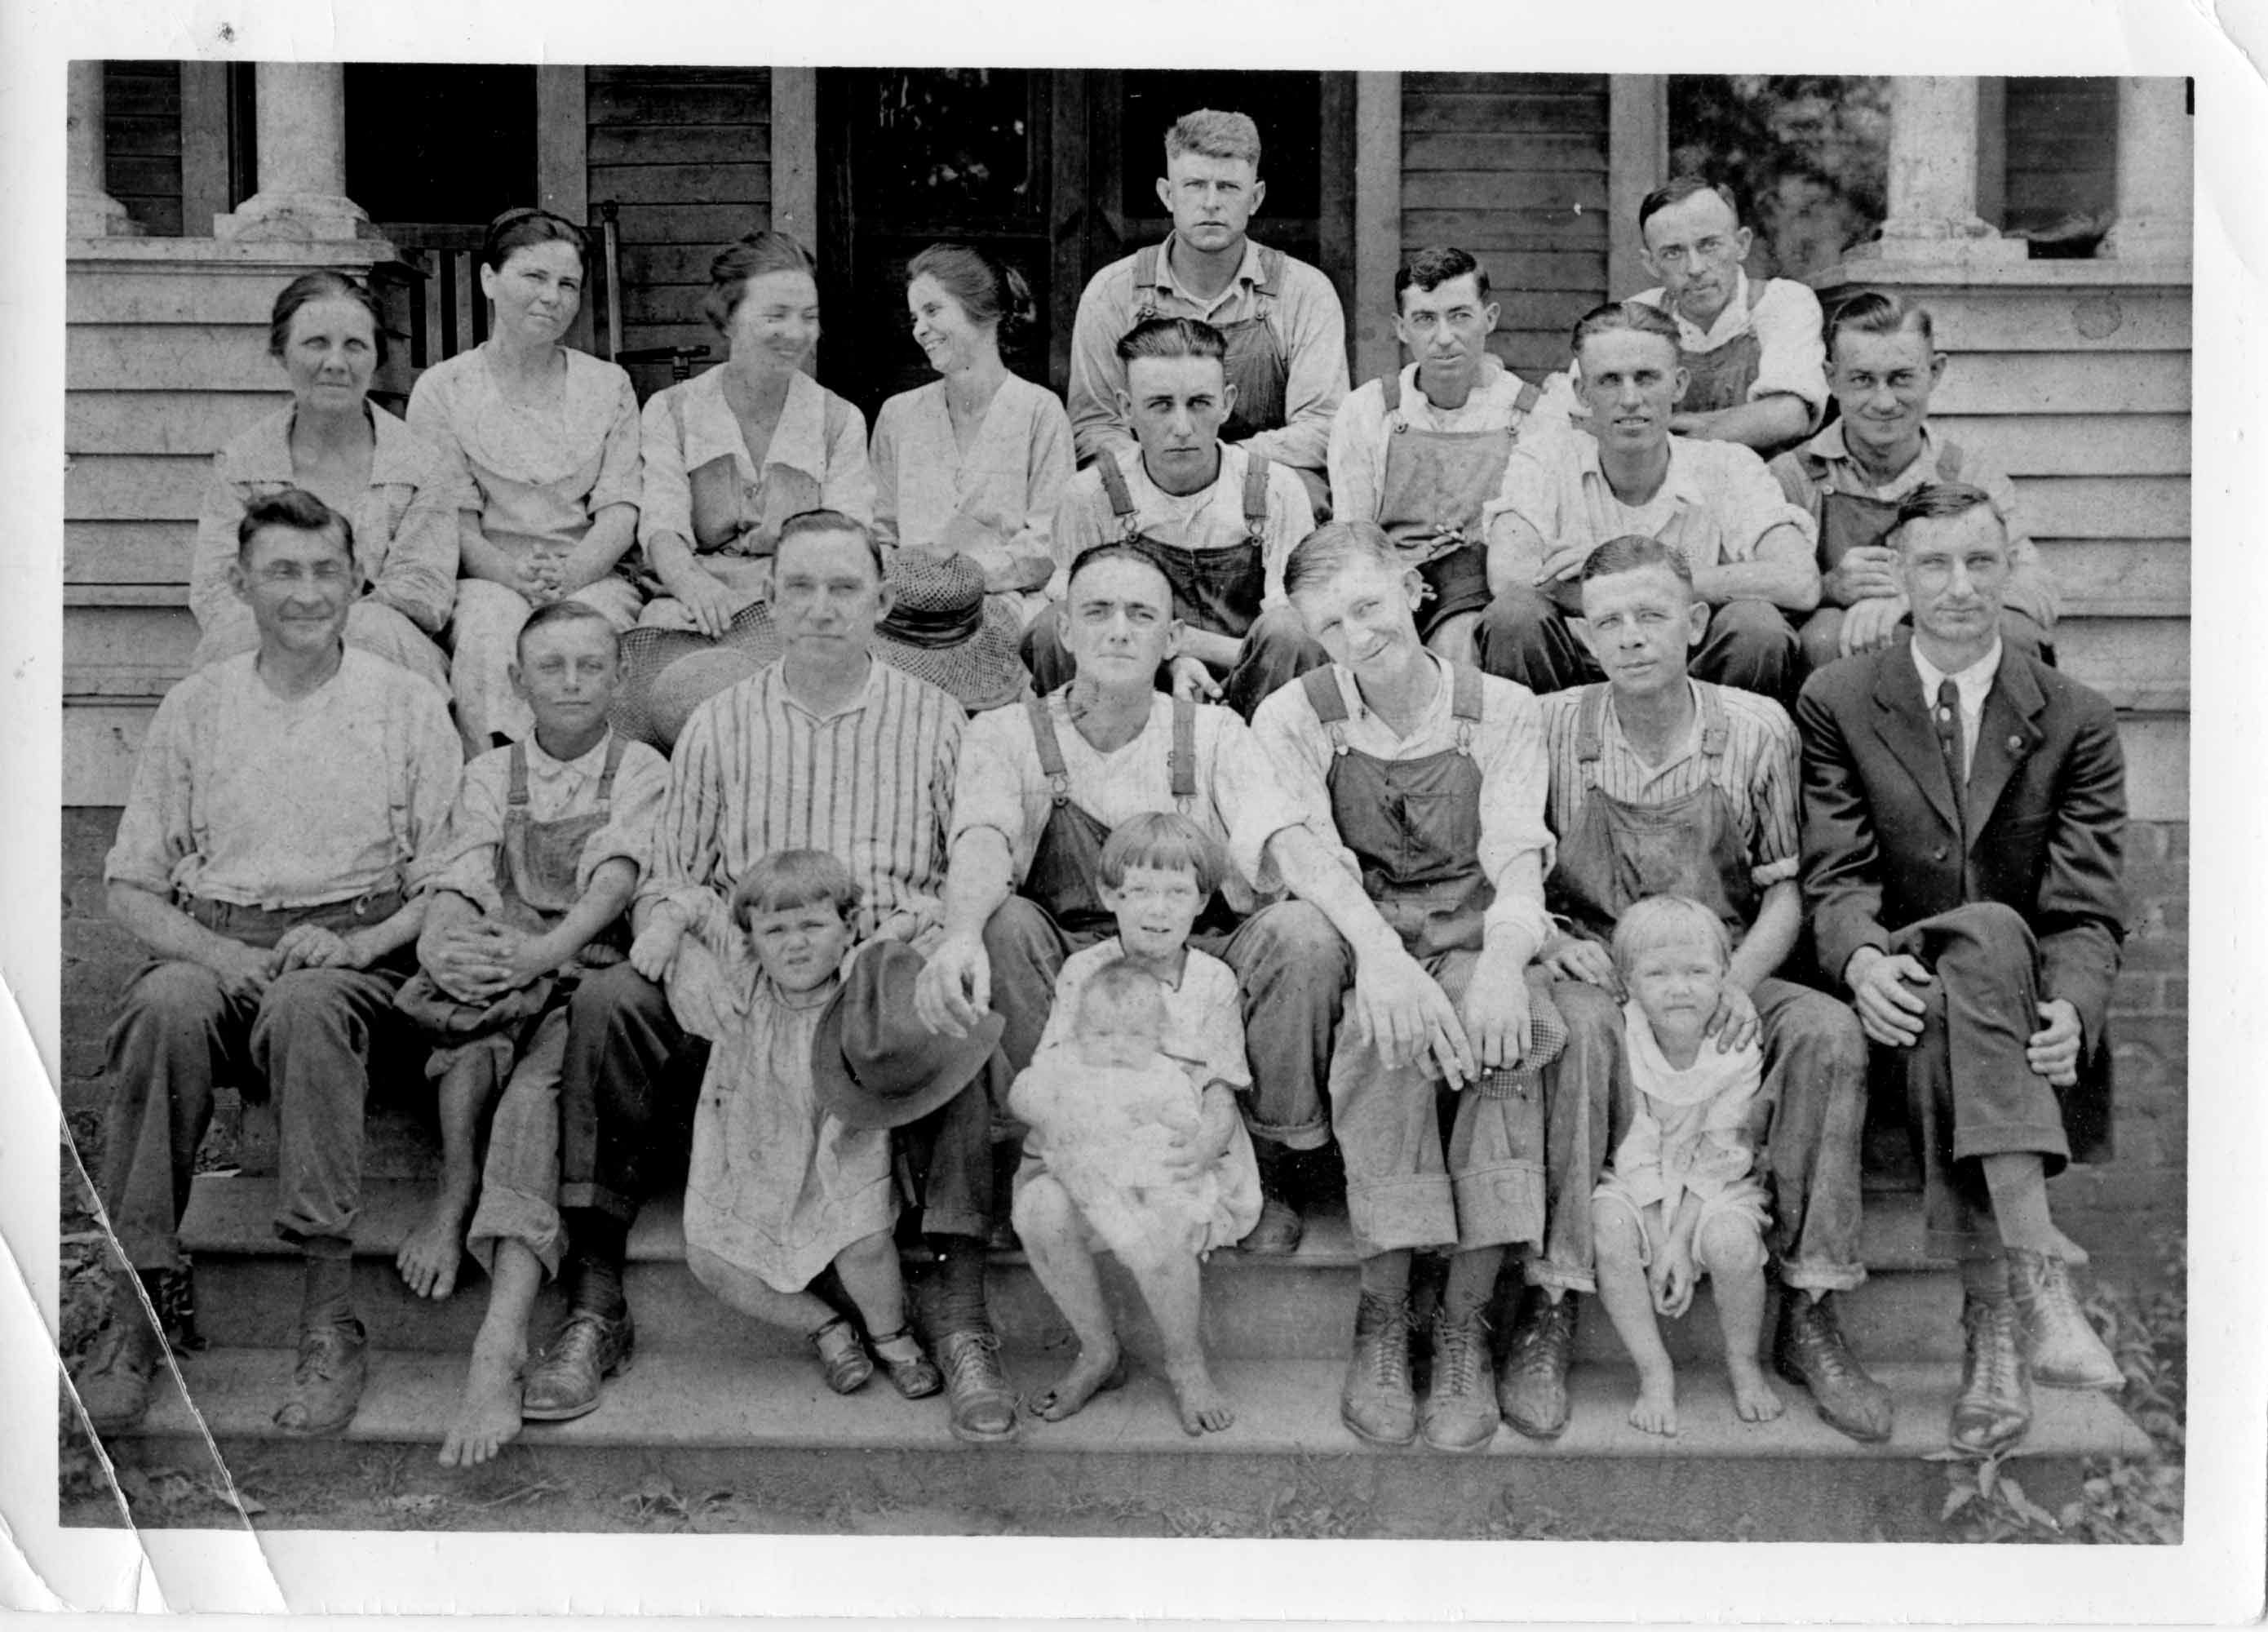 Visitors at the North Charlotte Inn in the 1920s. It later became Shue's Boarding House.